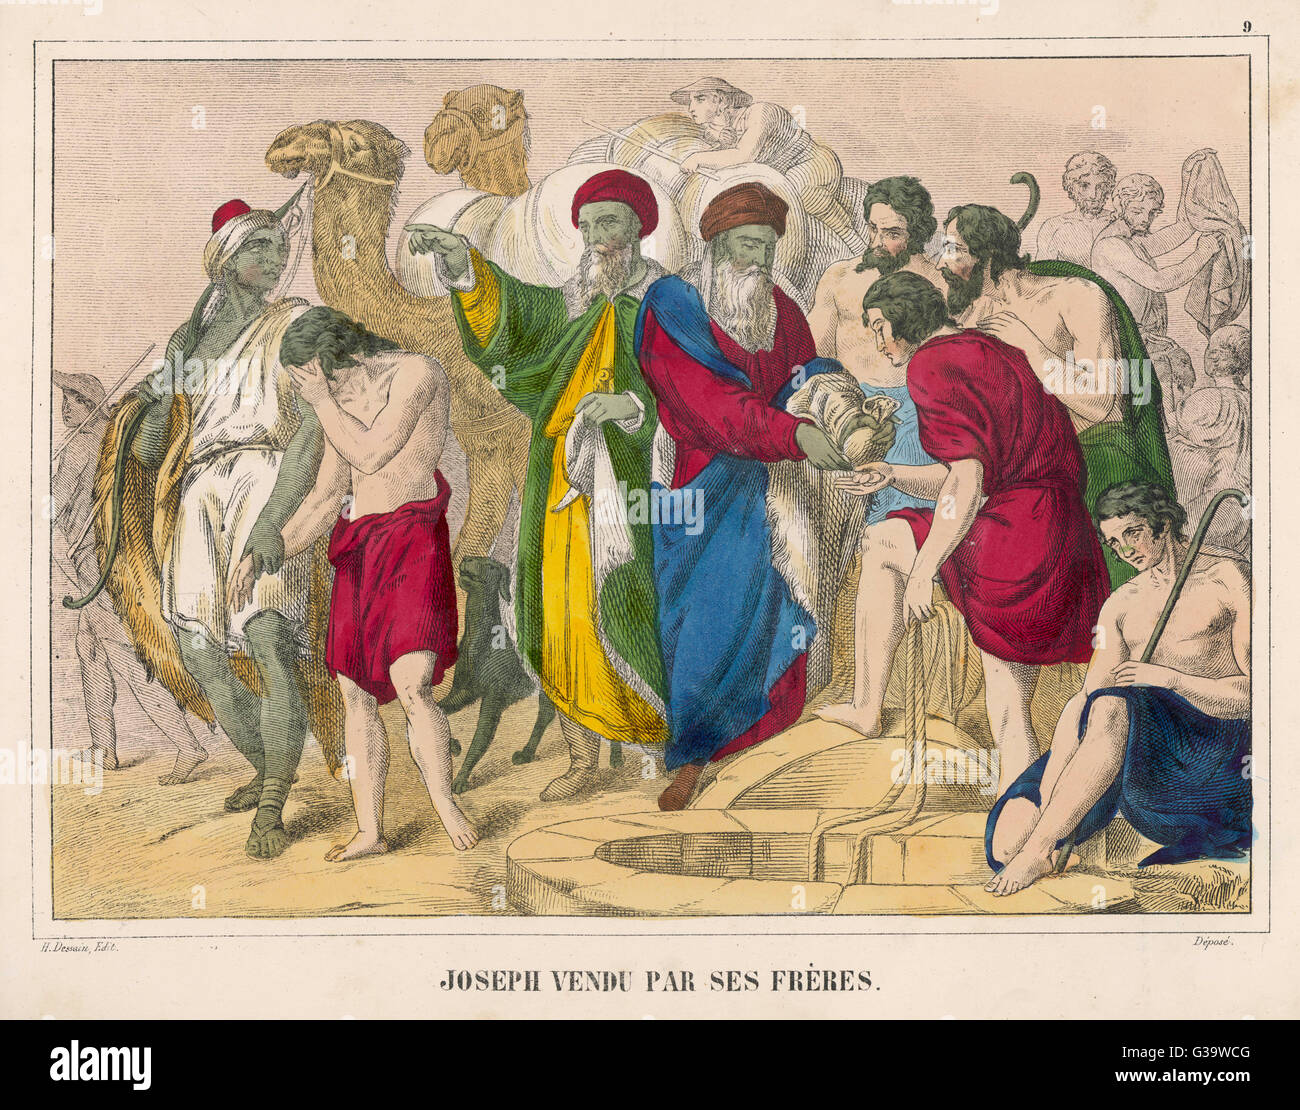 Joseph is sold by his brothers  to some merchants - an  unkindness which they will  later come to regret... - Stock Image